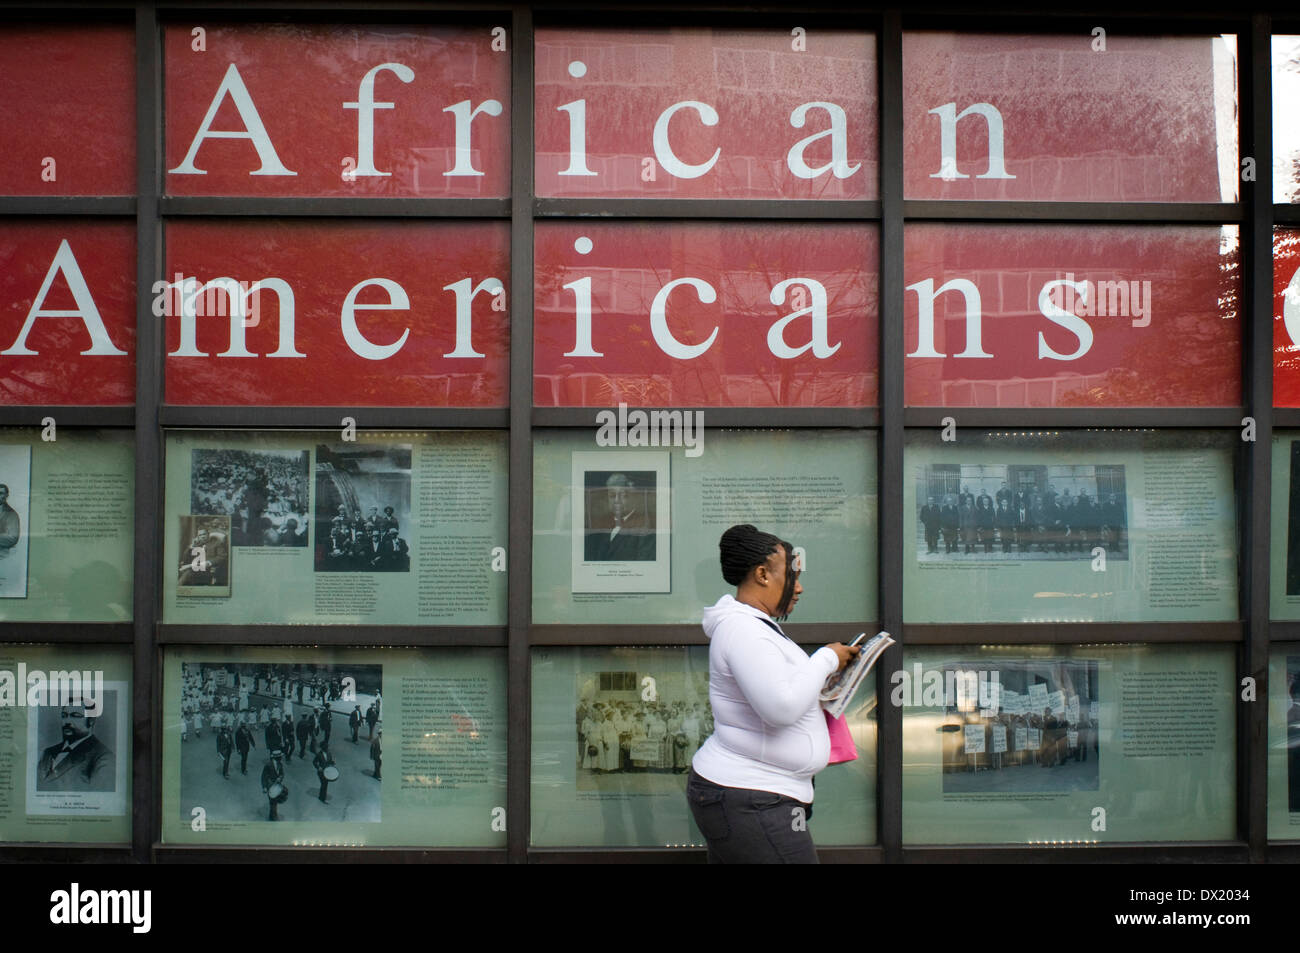 Exhibition of Africans Americans in the Museo del Barrio. 1230 Fifth Avenue and 104th Street. Telephone 212-831-7272. - Stock Image